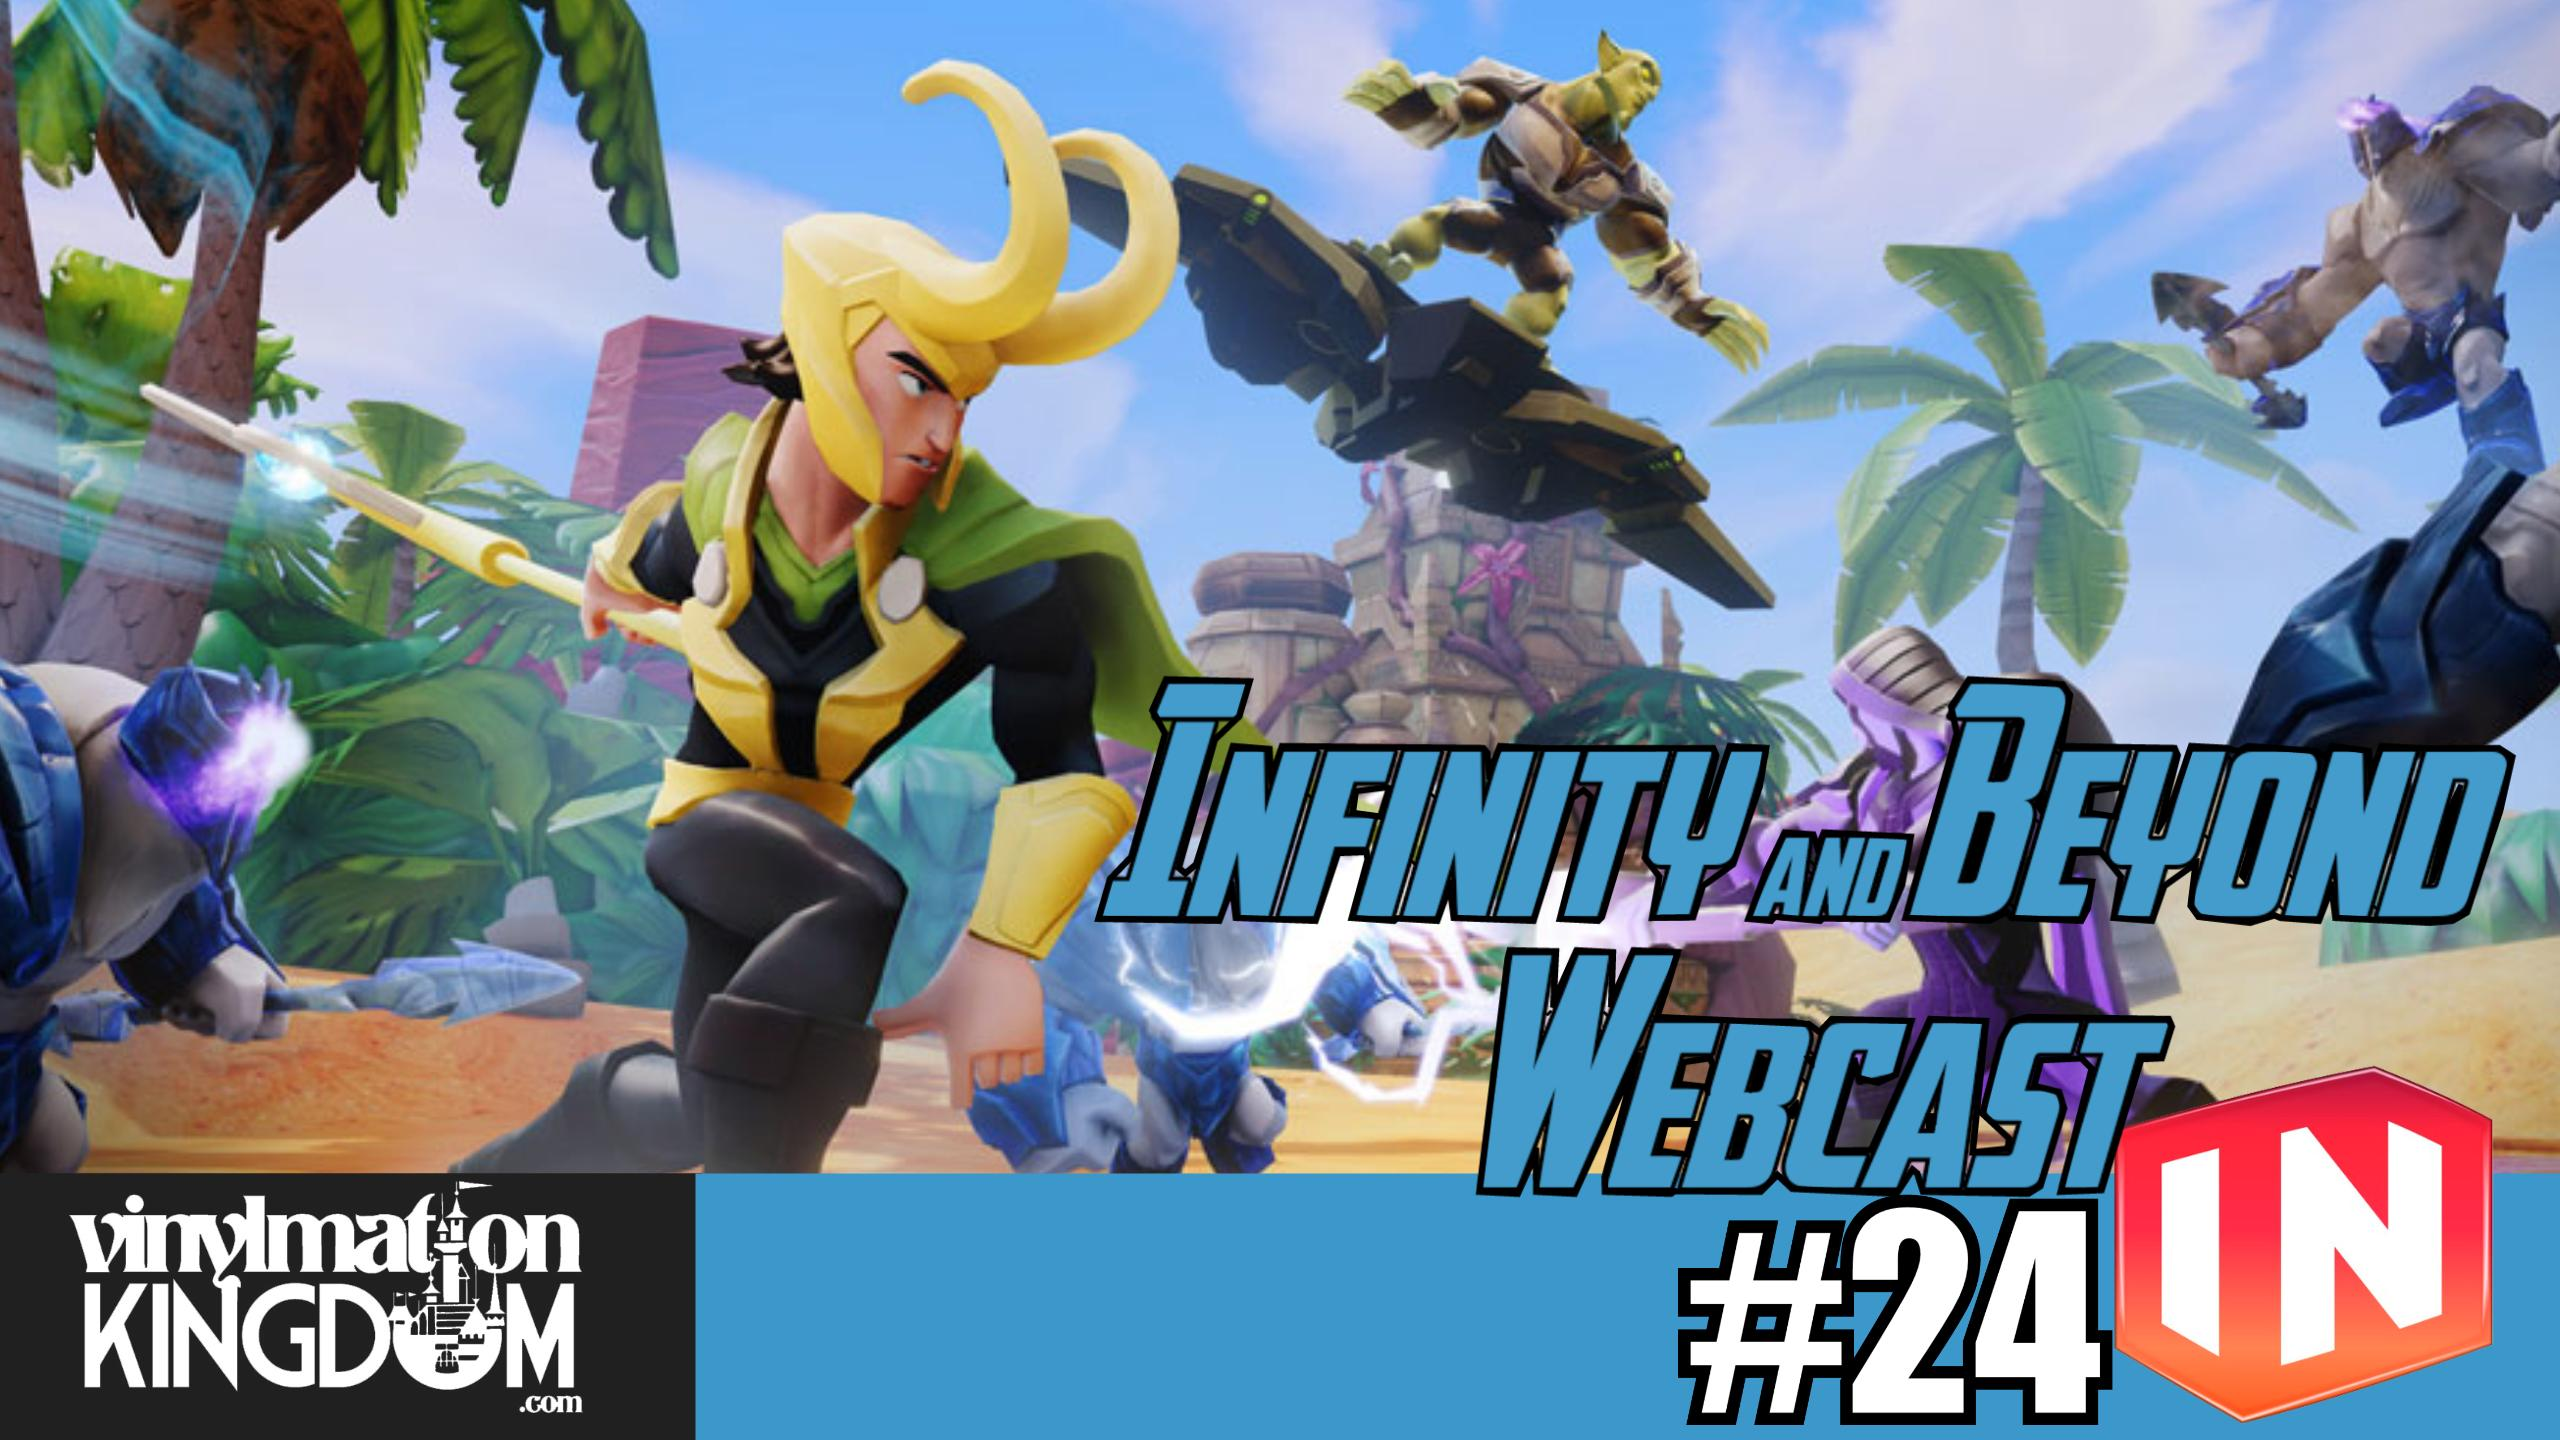 Disney Infinity & Beyond Webcast 24 – Villains, New Books & Power Disc Discussion